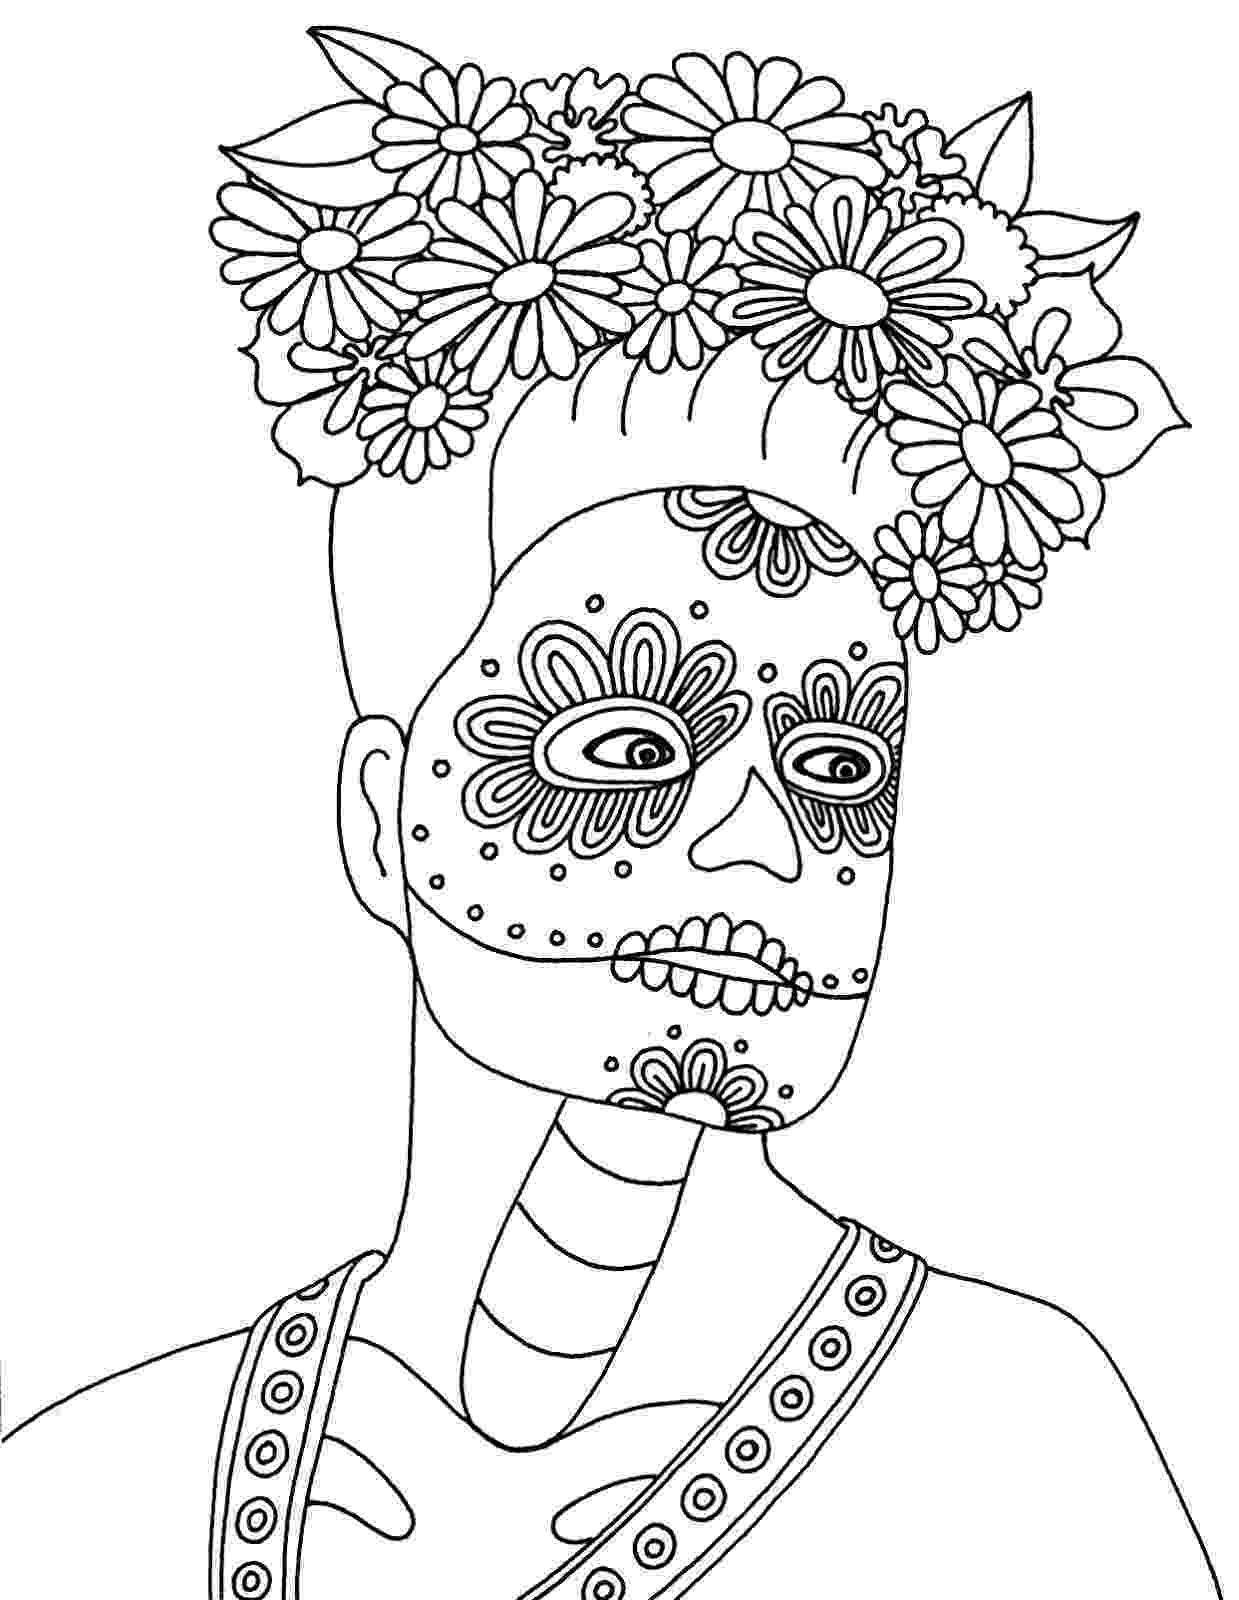 people coloring sheets people coloring pages getcoloringpagescom people sheets coloring